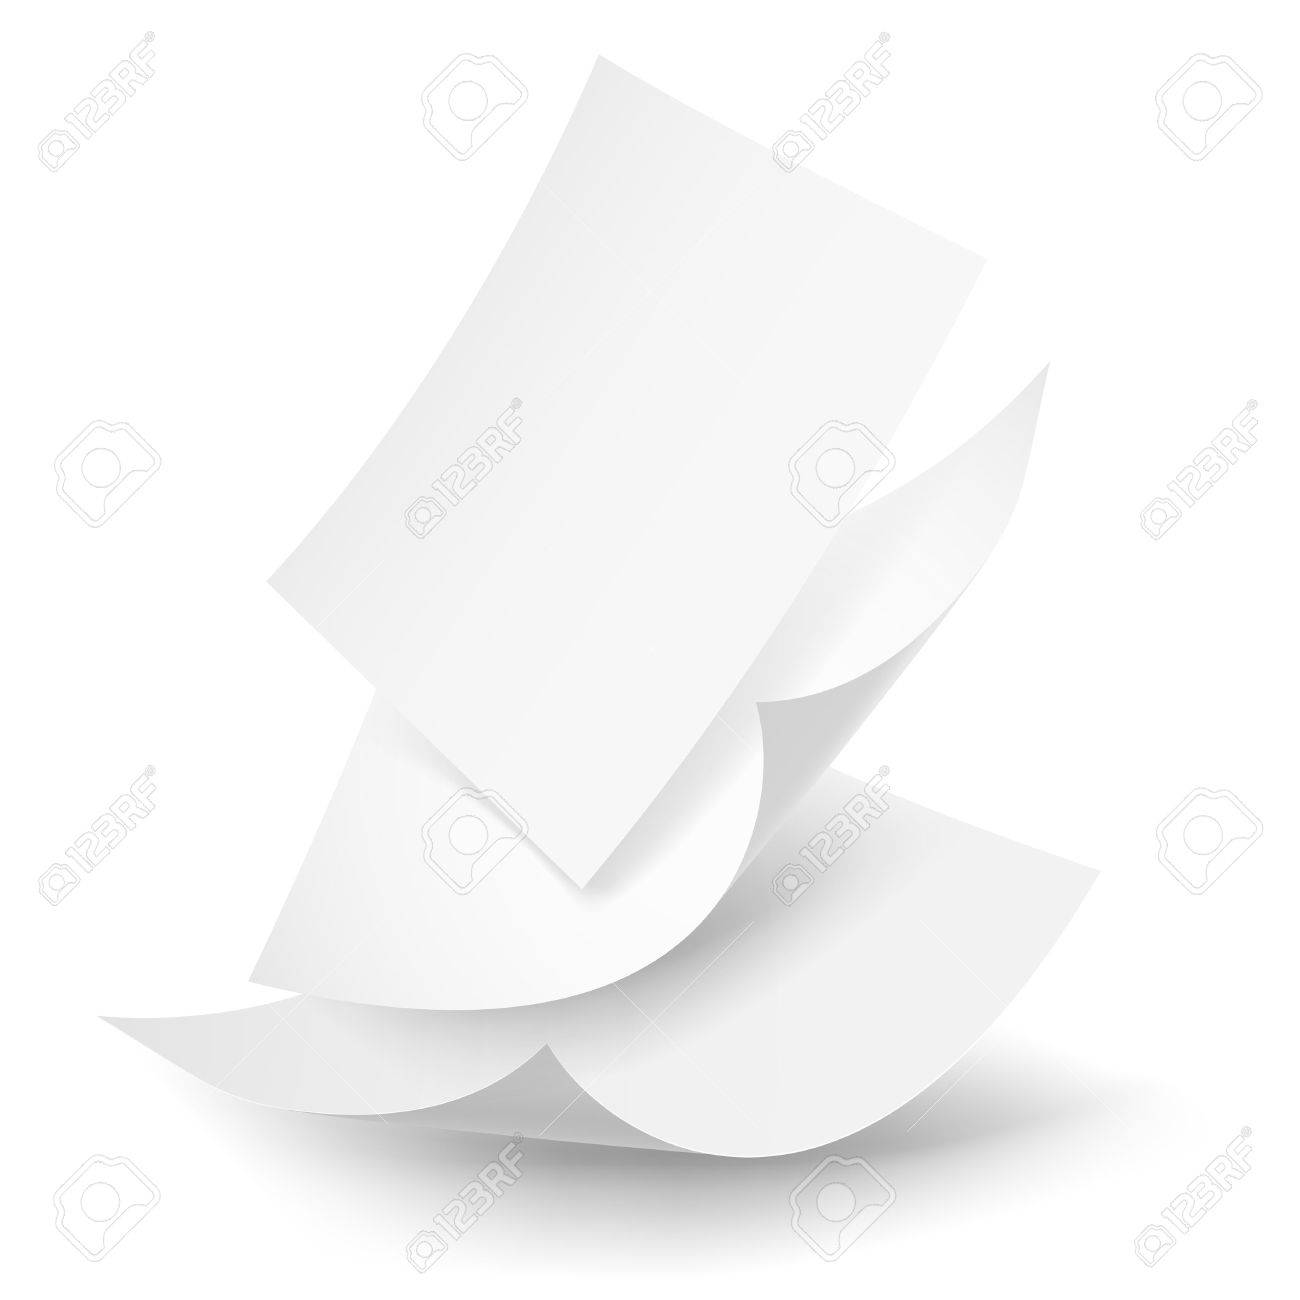 Blank paper sheets falling down. Illustration on white background. - 24120481